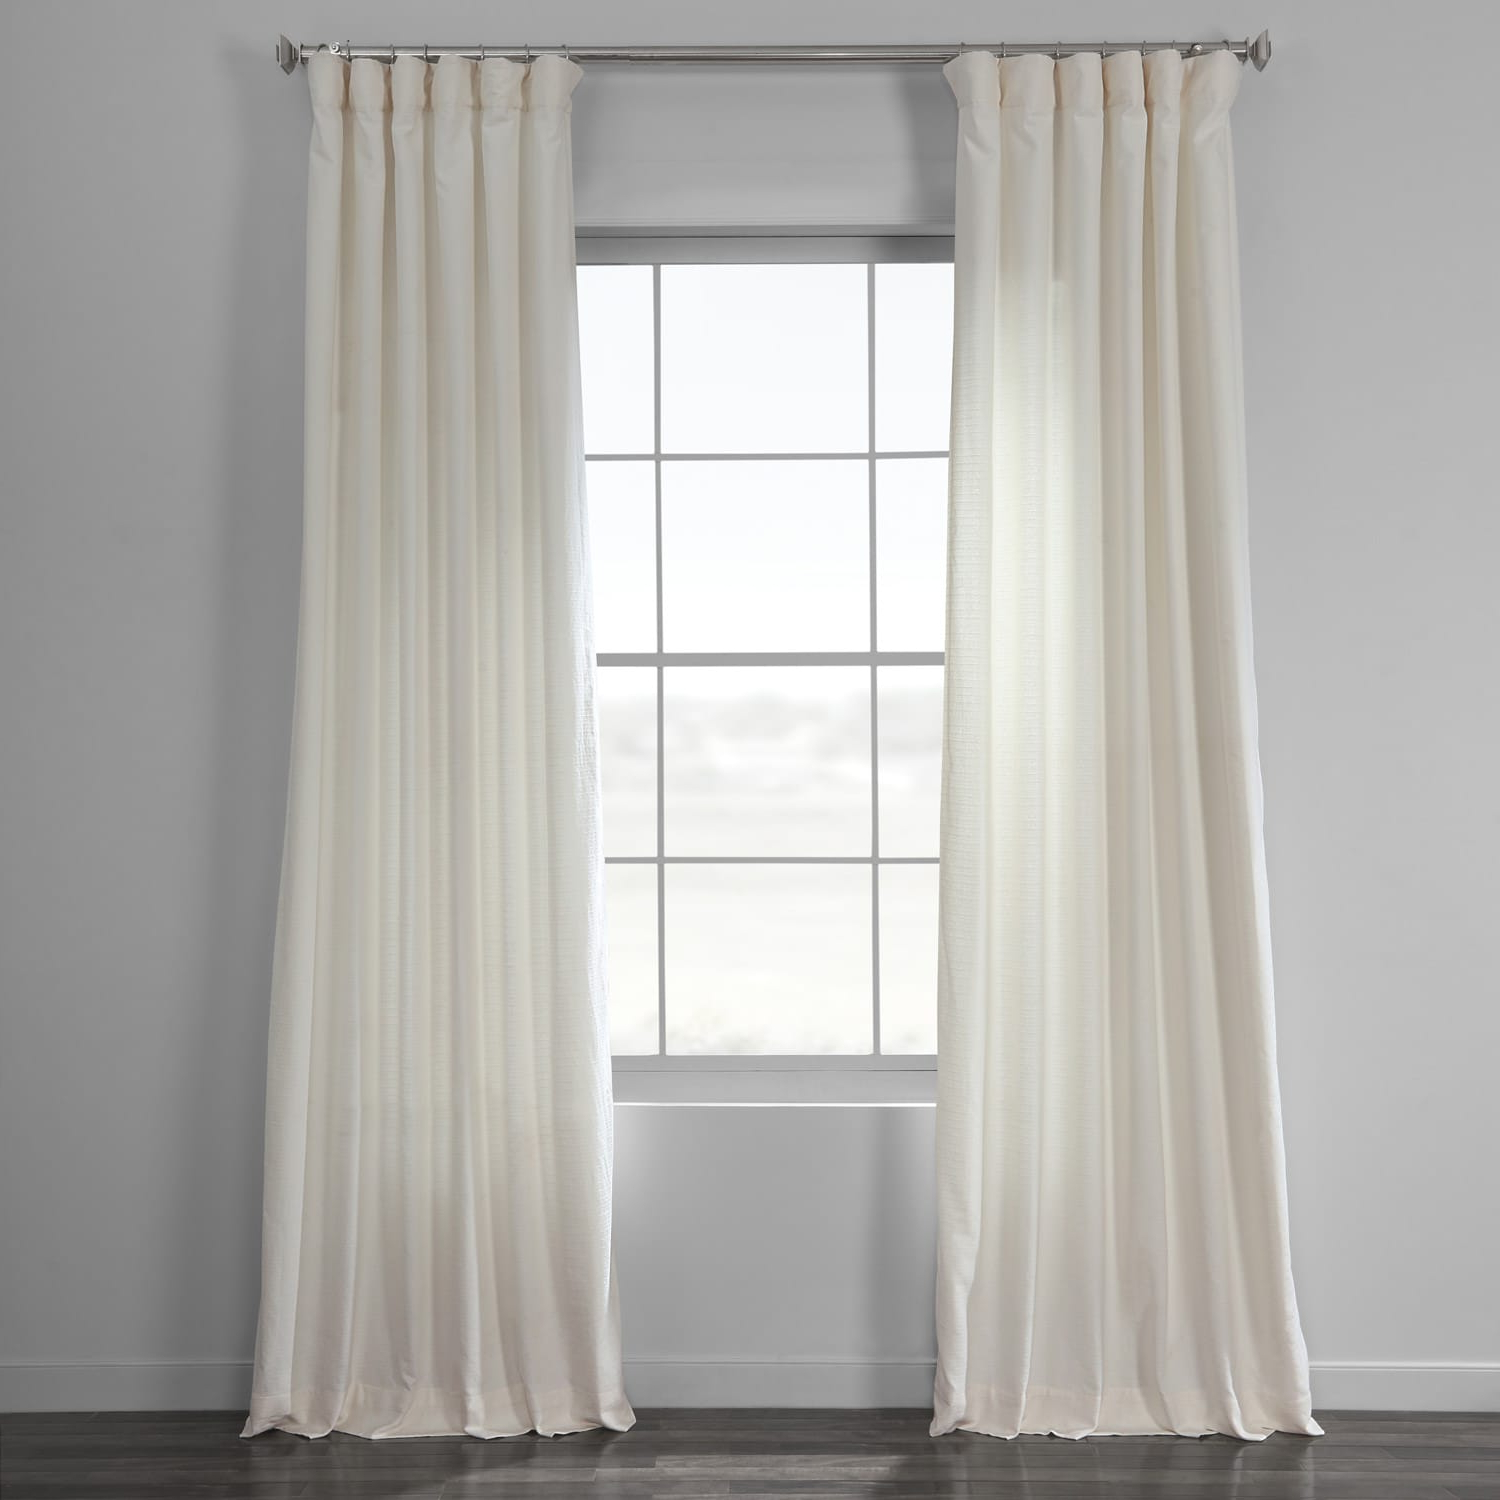 Birch Bark Weave Solid Cotton Curtain With Recent Solid Cotton Pleated Curtains (View 13 of 20)